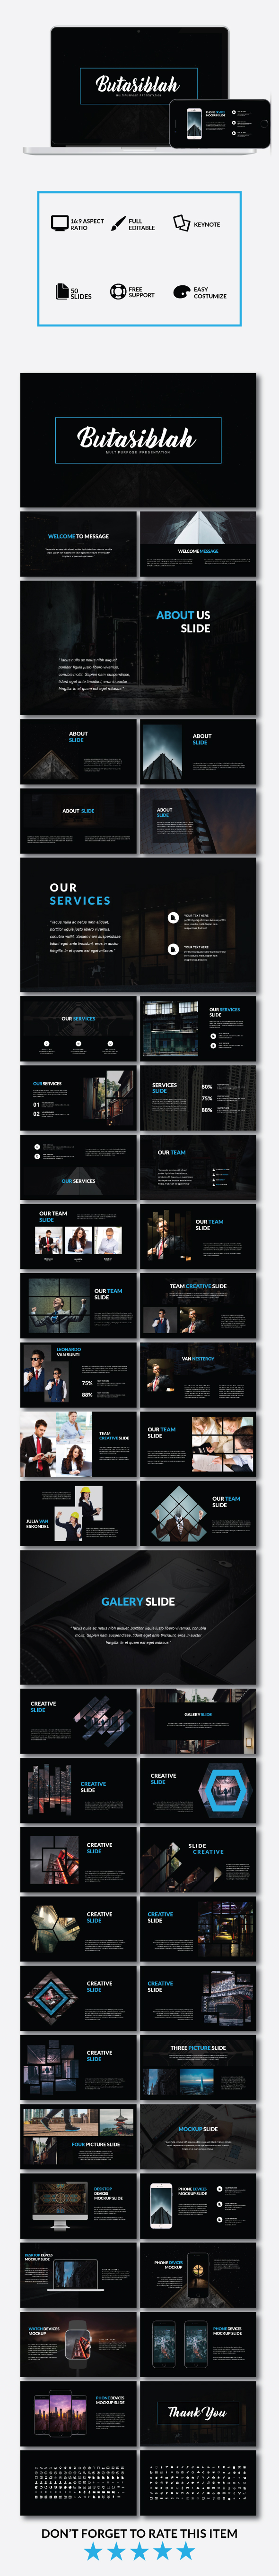 GraphicRiver Butasiblah Multipurpose Keynote 20975125